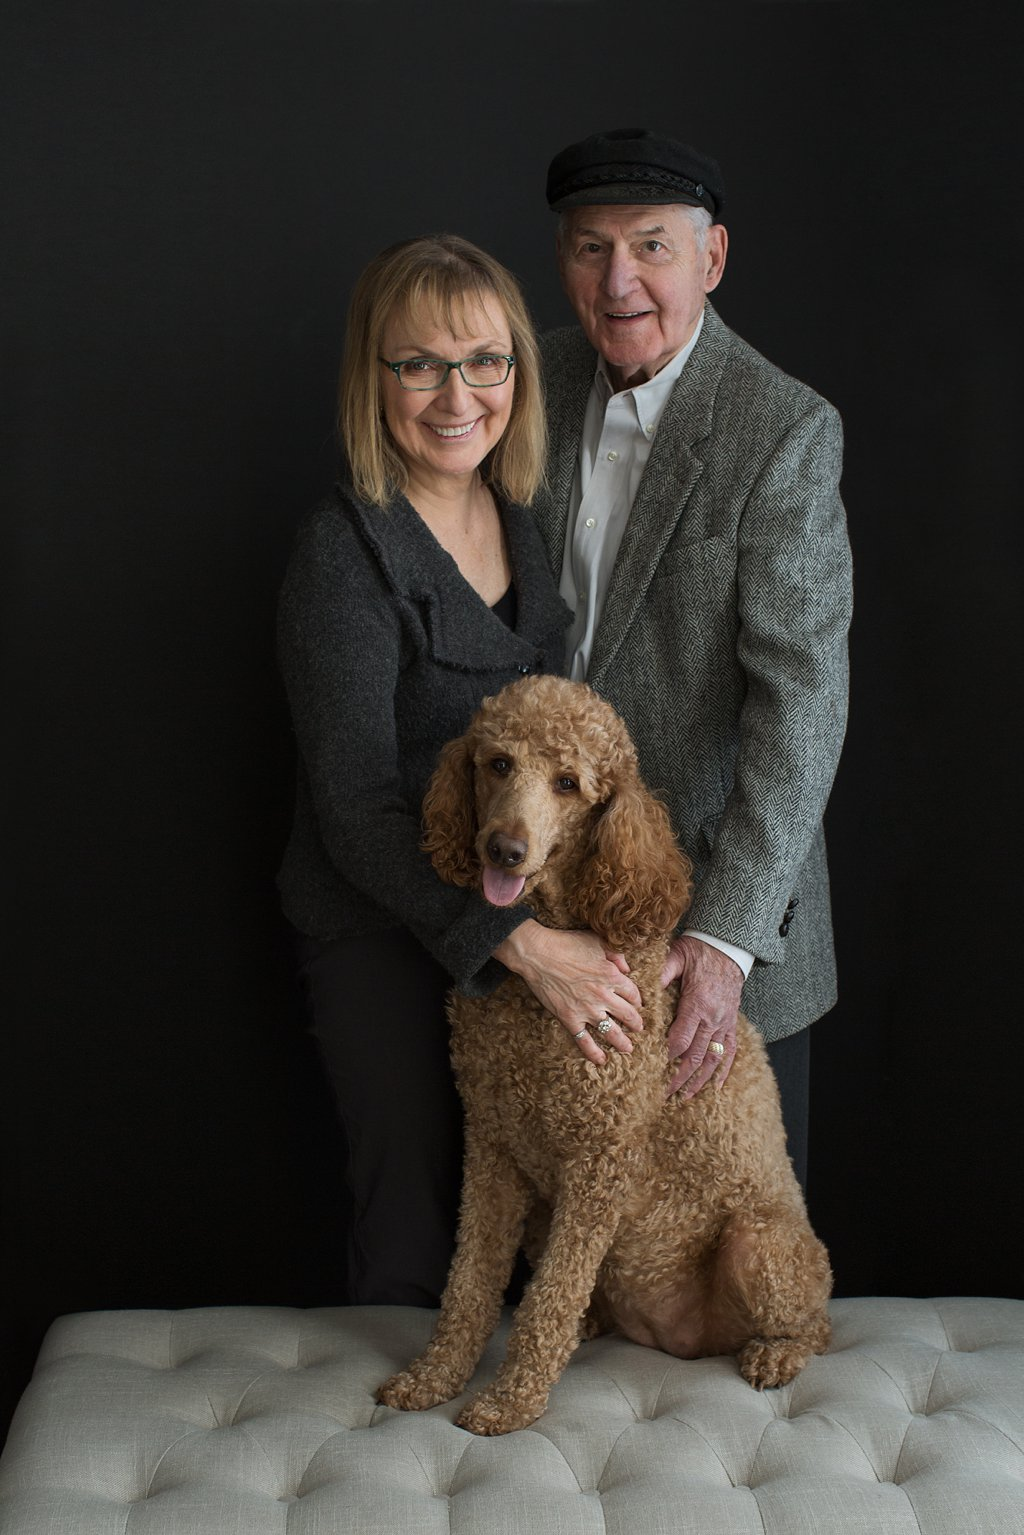 Portrait of Couple with Poodle Dog_0007.jpg